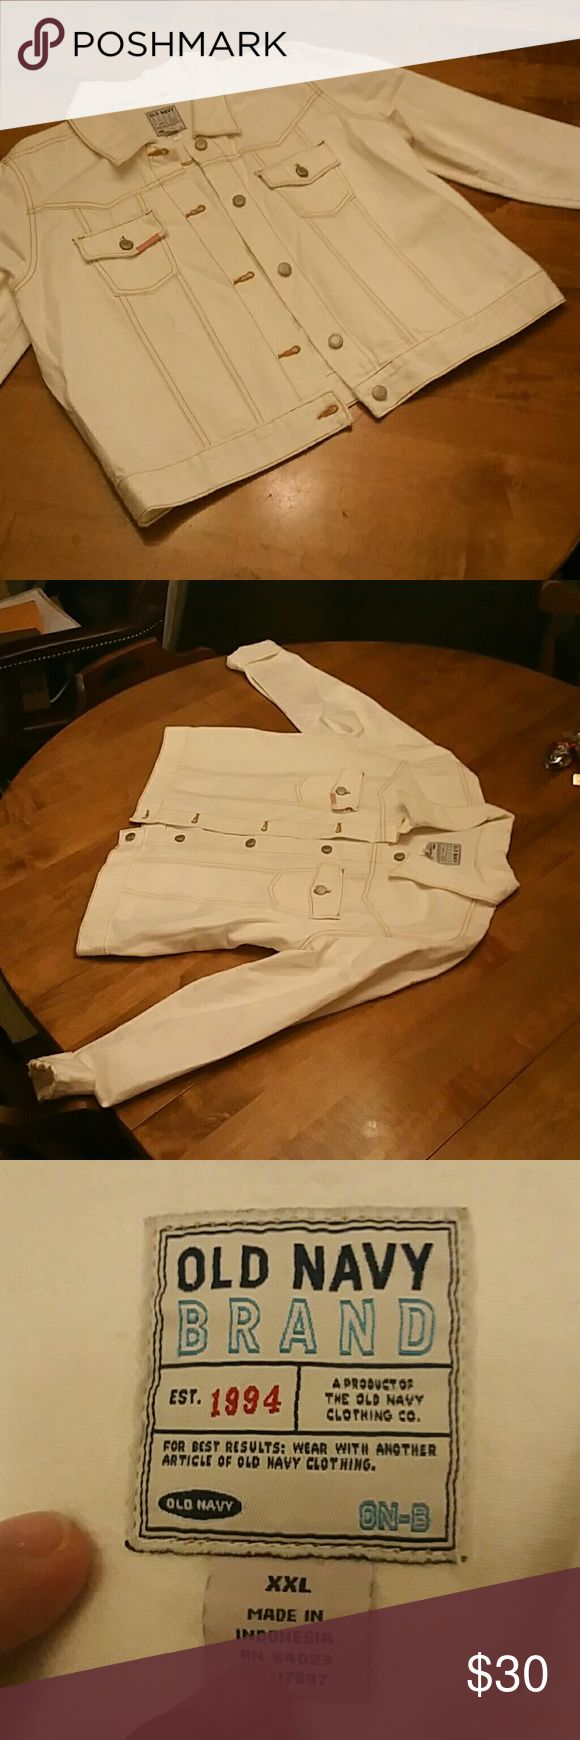 Old Navy jean jacket size XXL White Old Navy jean jacket size XXL.  Design on left rear shoulder.  Distressed. Old Navy Jackets & Coats Jean Jackets